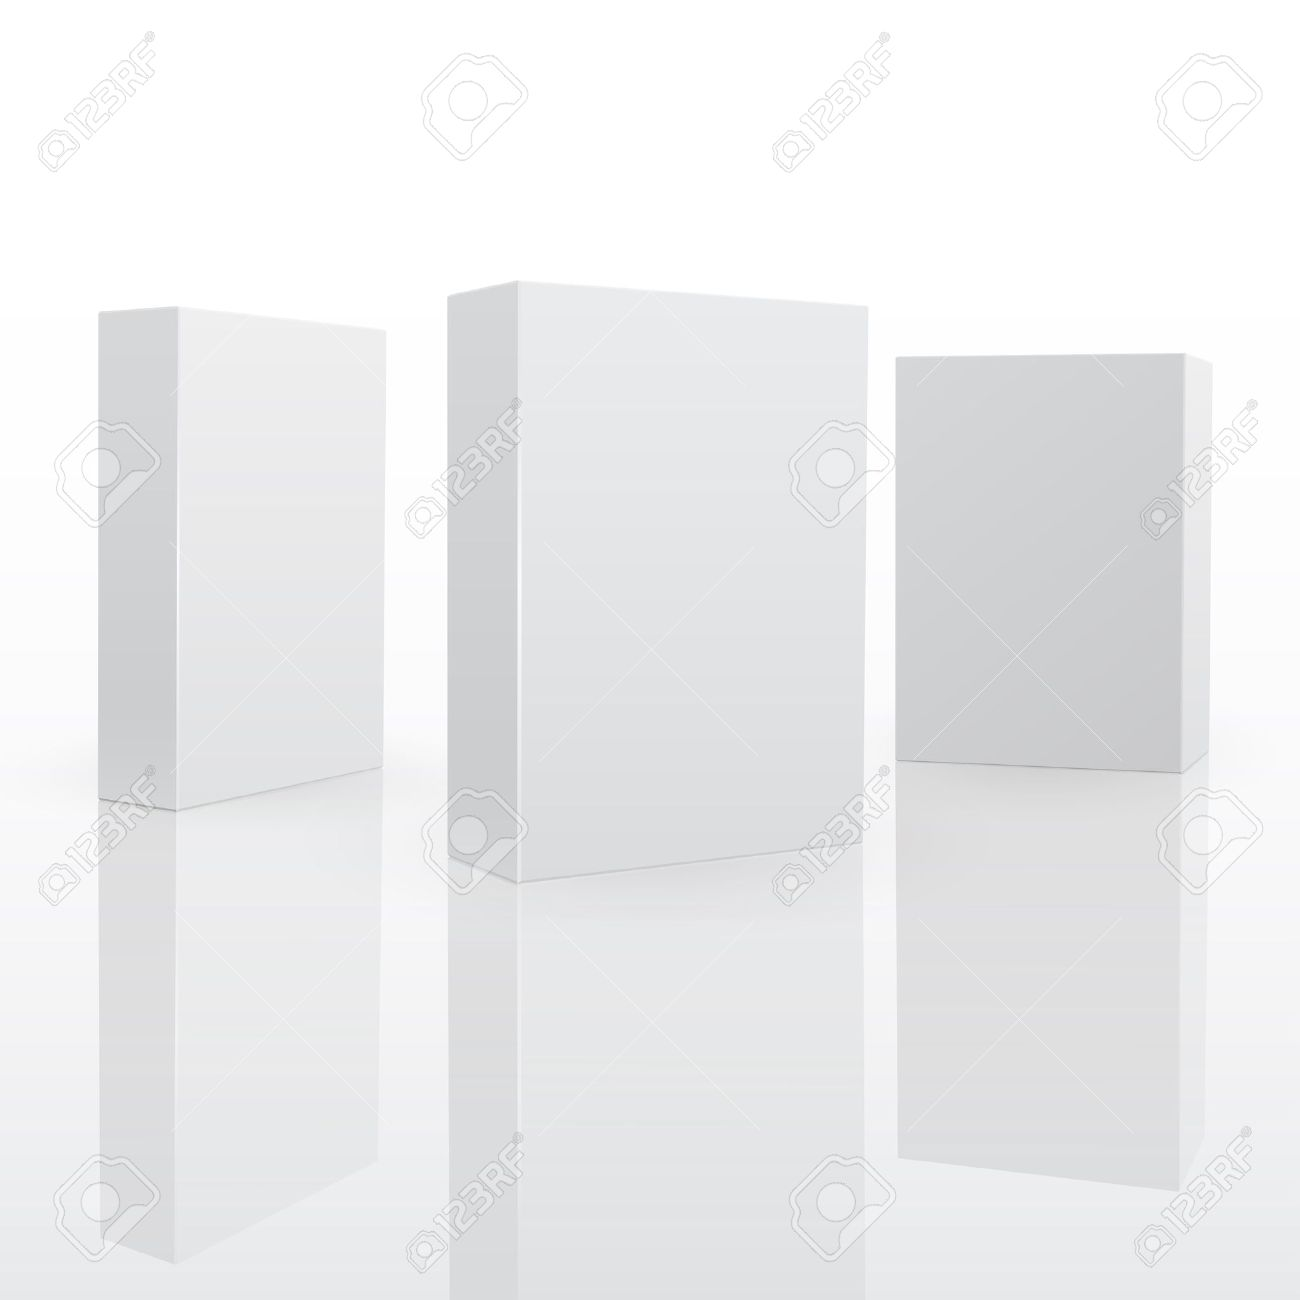 Blank pack fo software or other product. 3d vector illuctration Stock Vector - 9695909